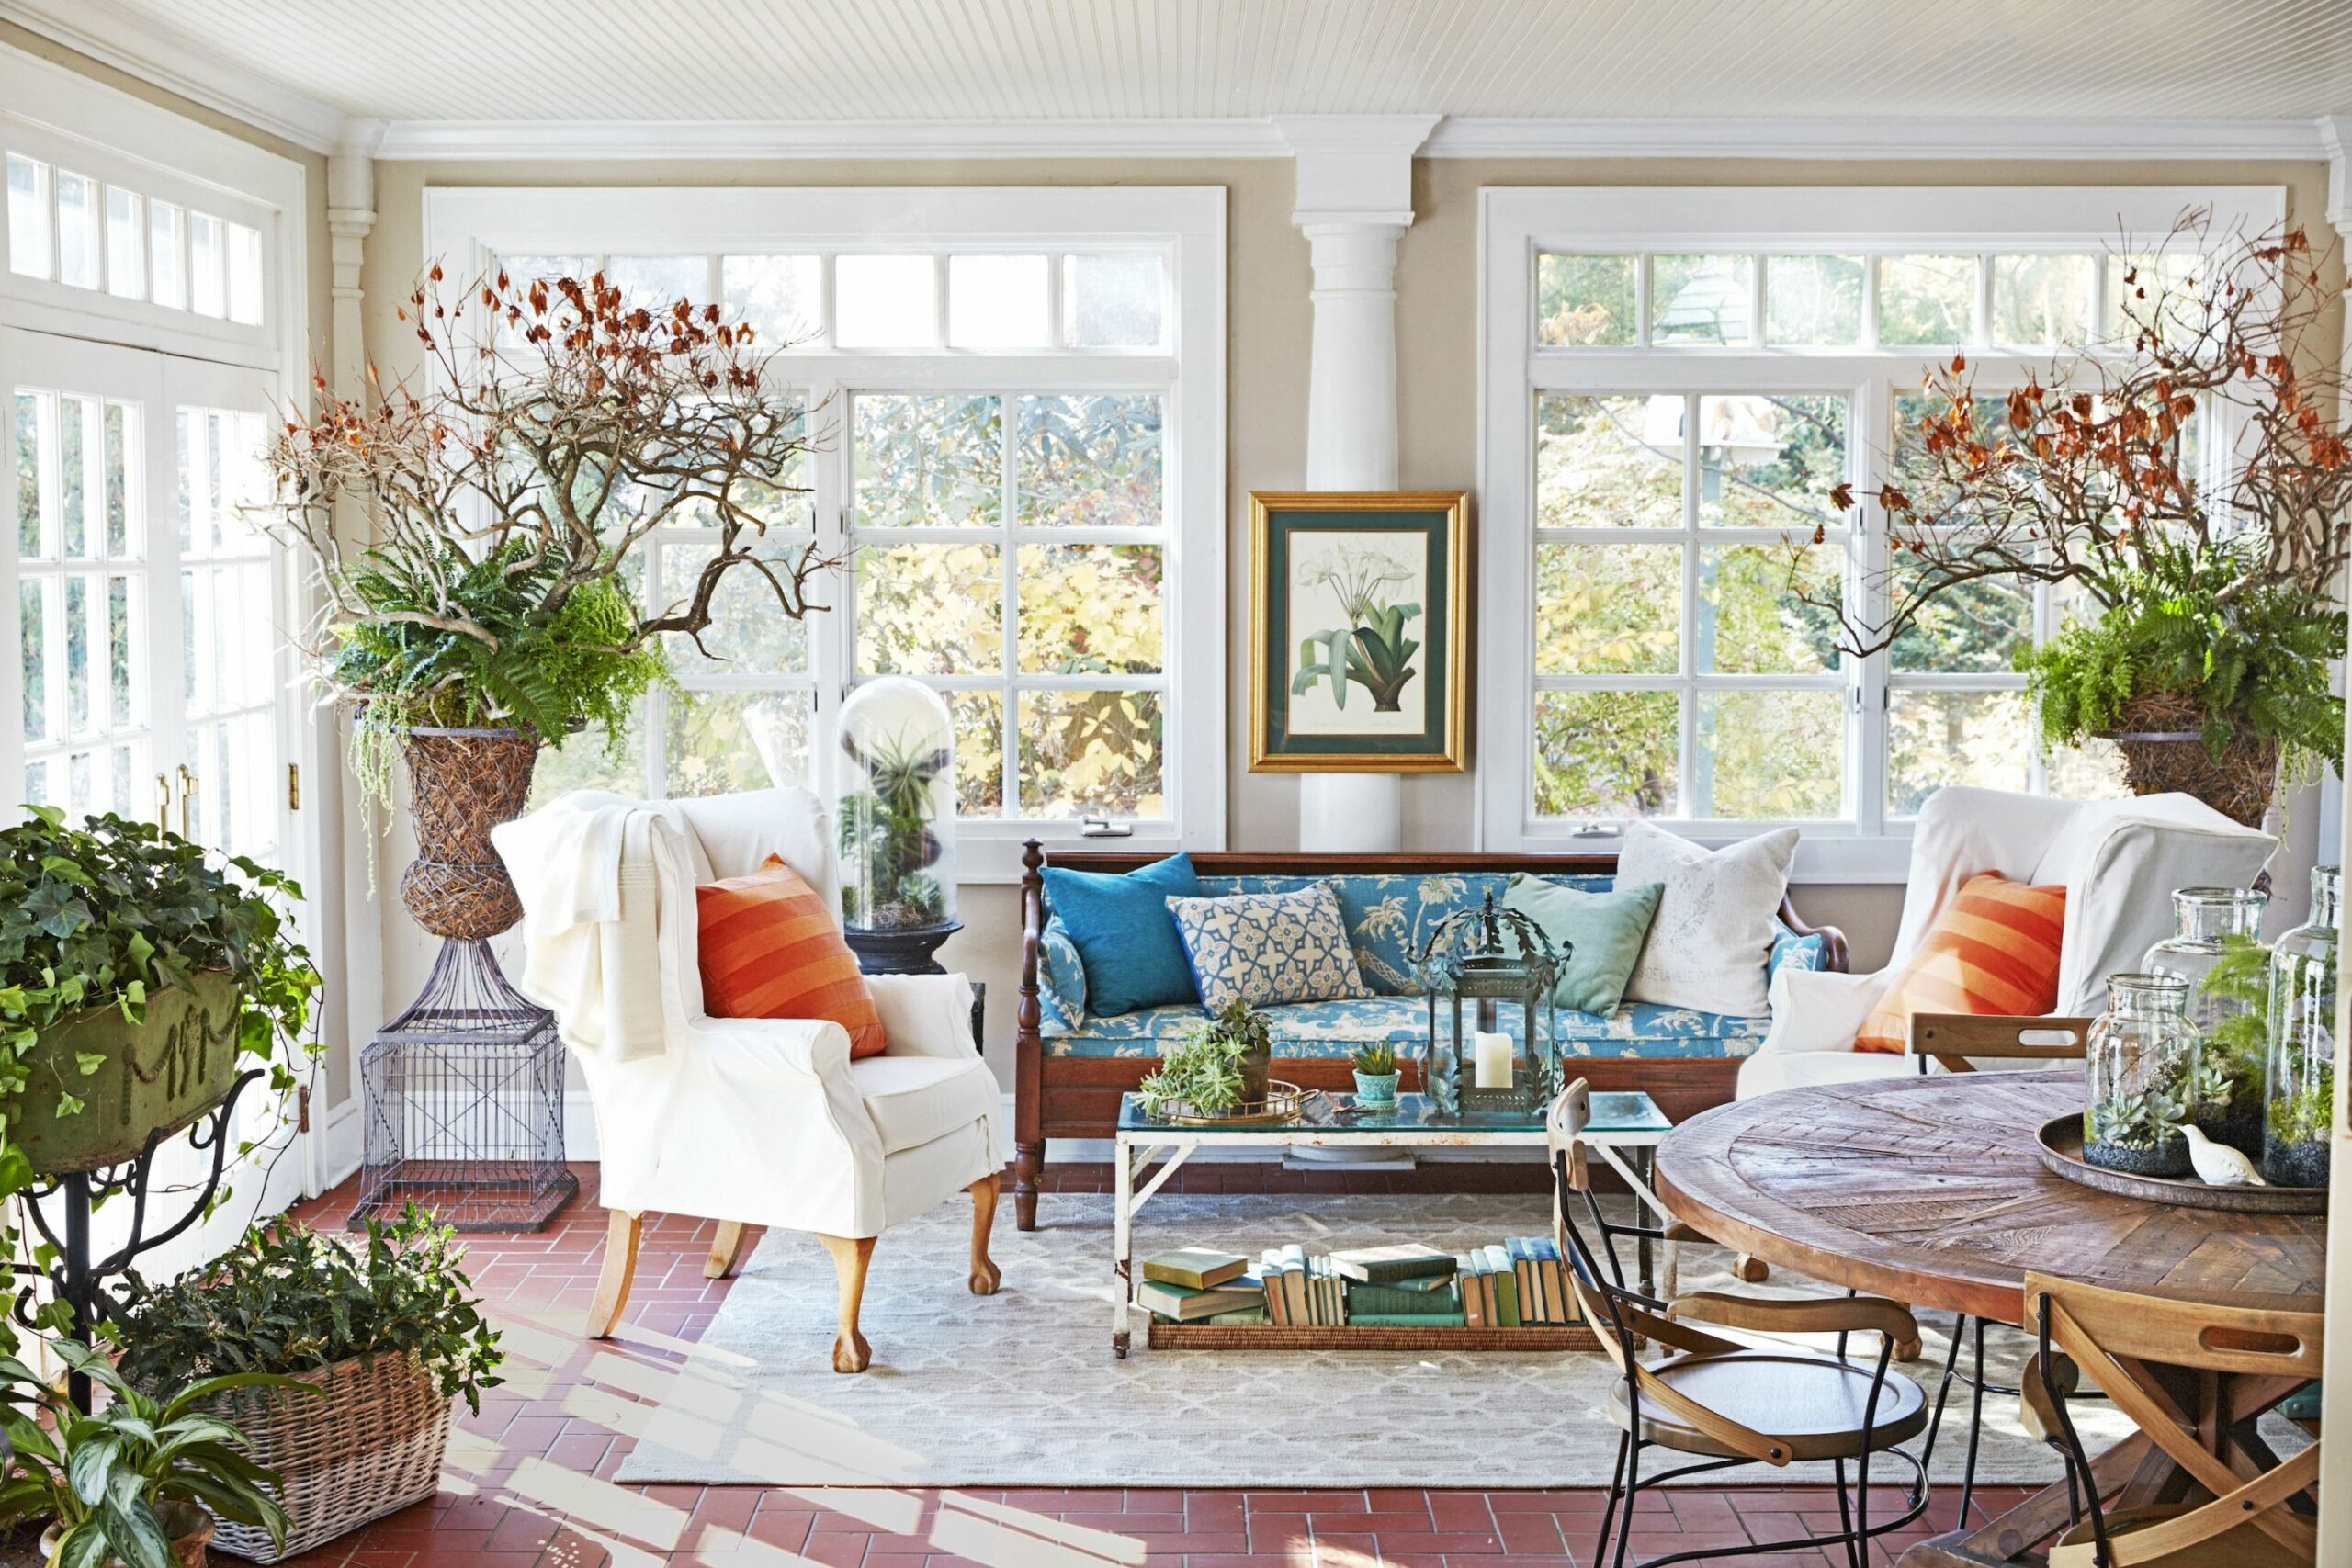 9 Sunroom Decorating Ideas - Best Designs for Sun Rooms